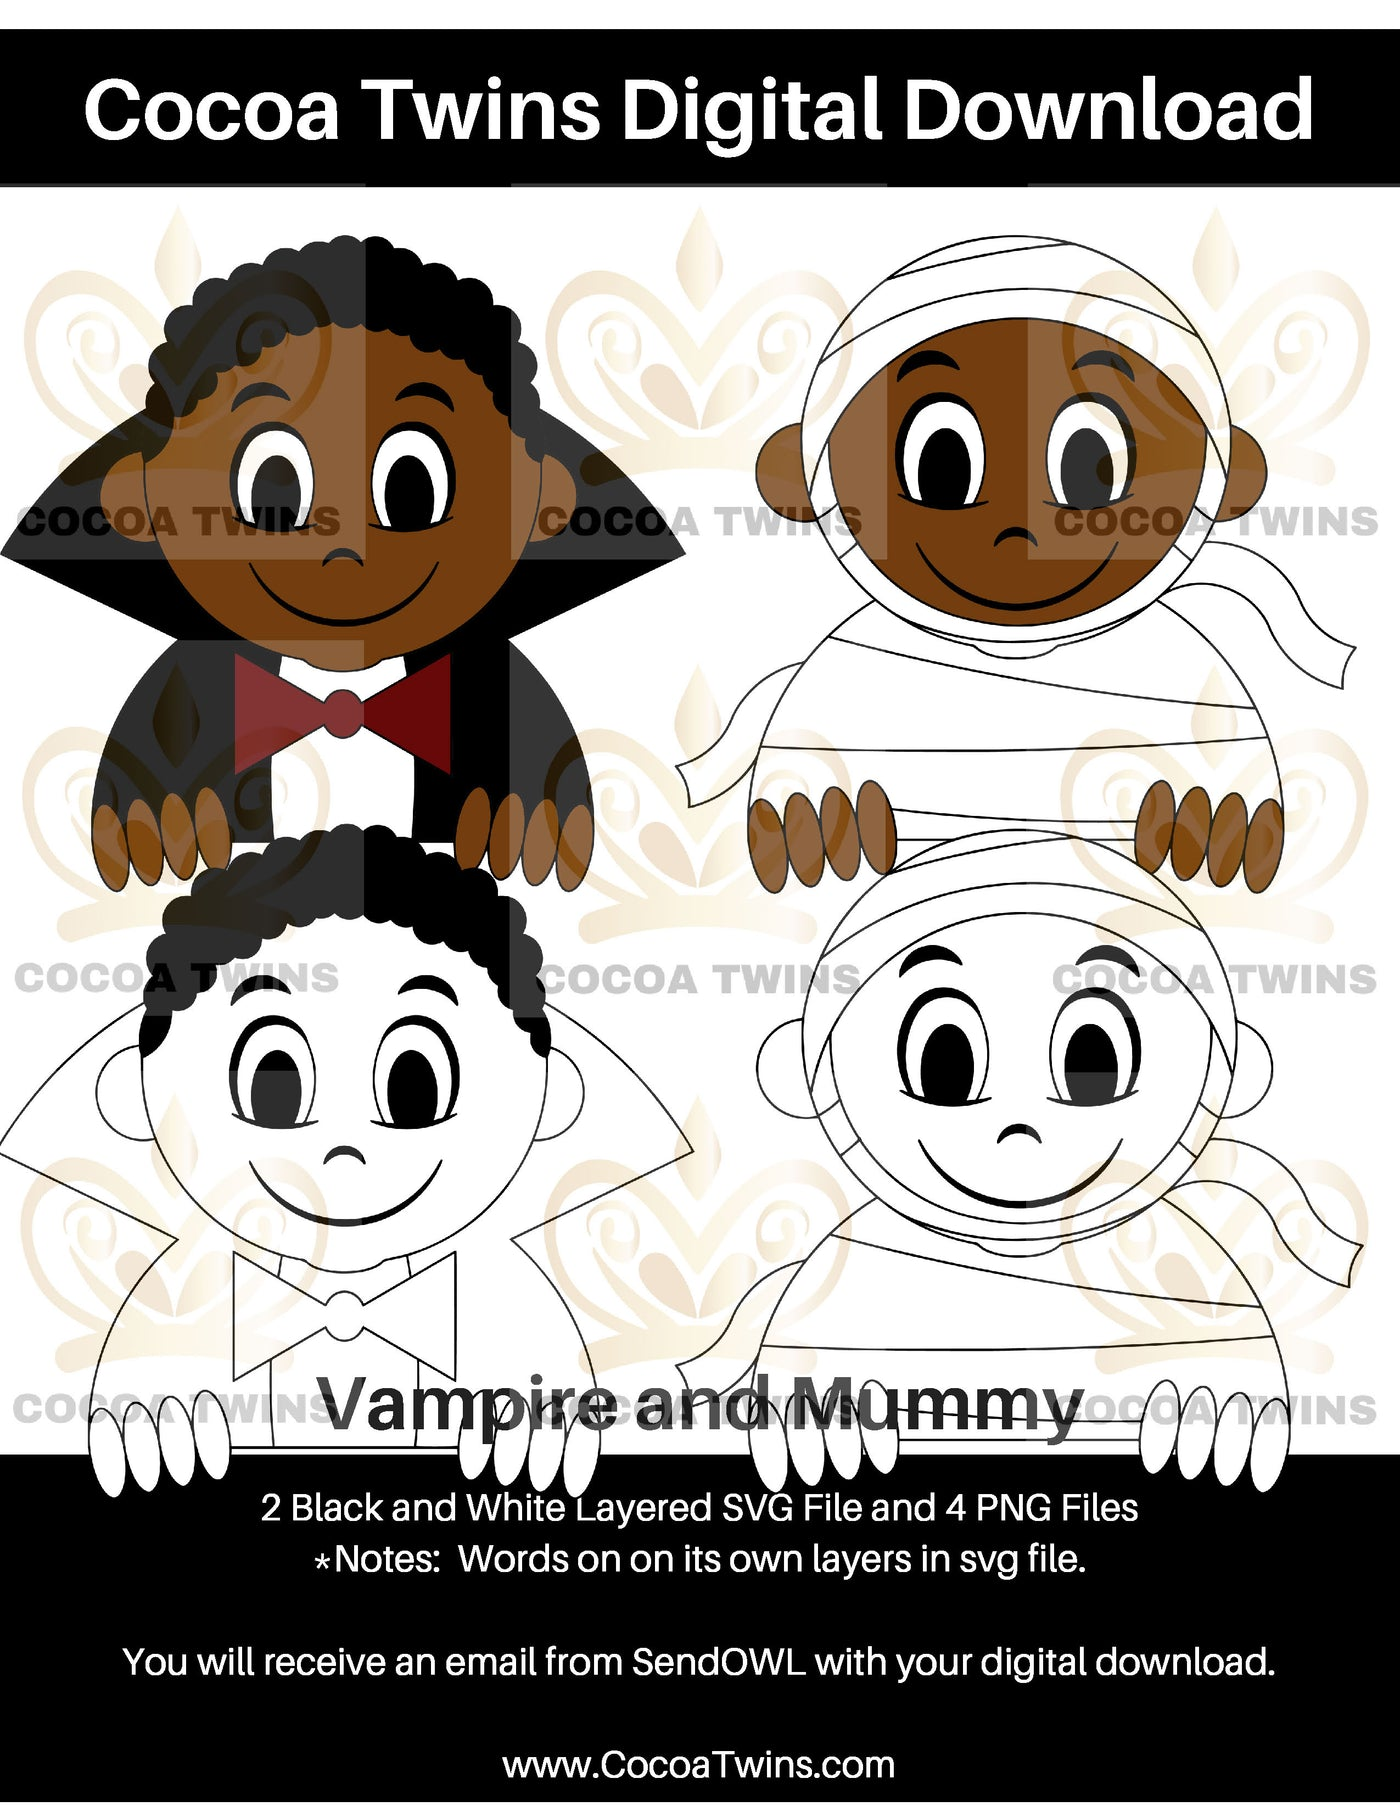 Digital Download  -  Vampire and Mummy - SVG Layered File and PNG File Format - Cocoa Twins